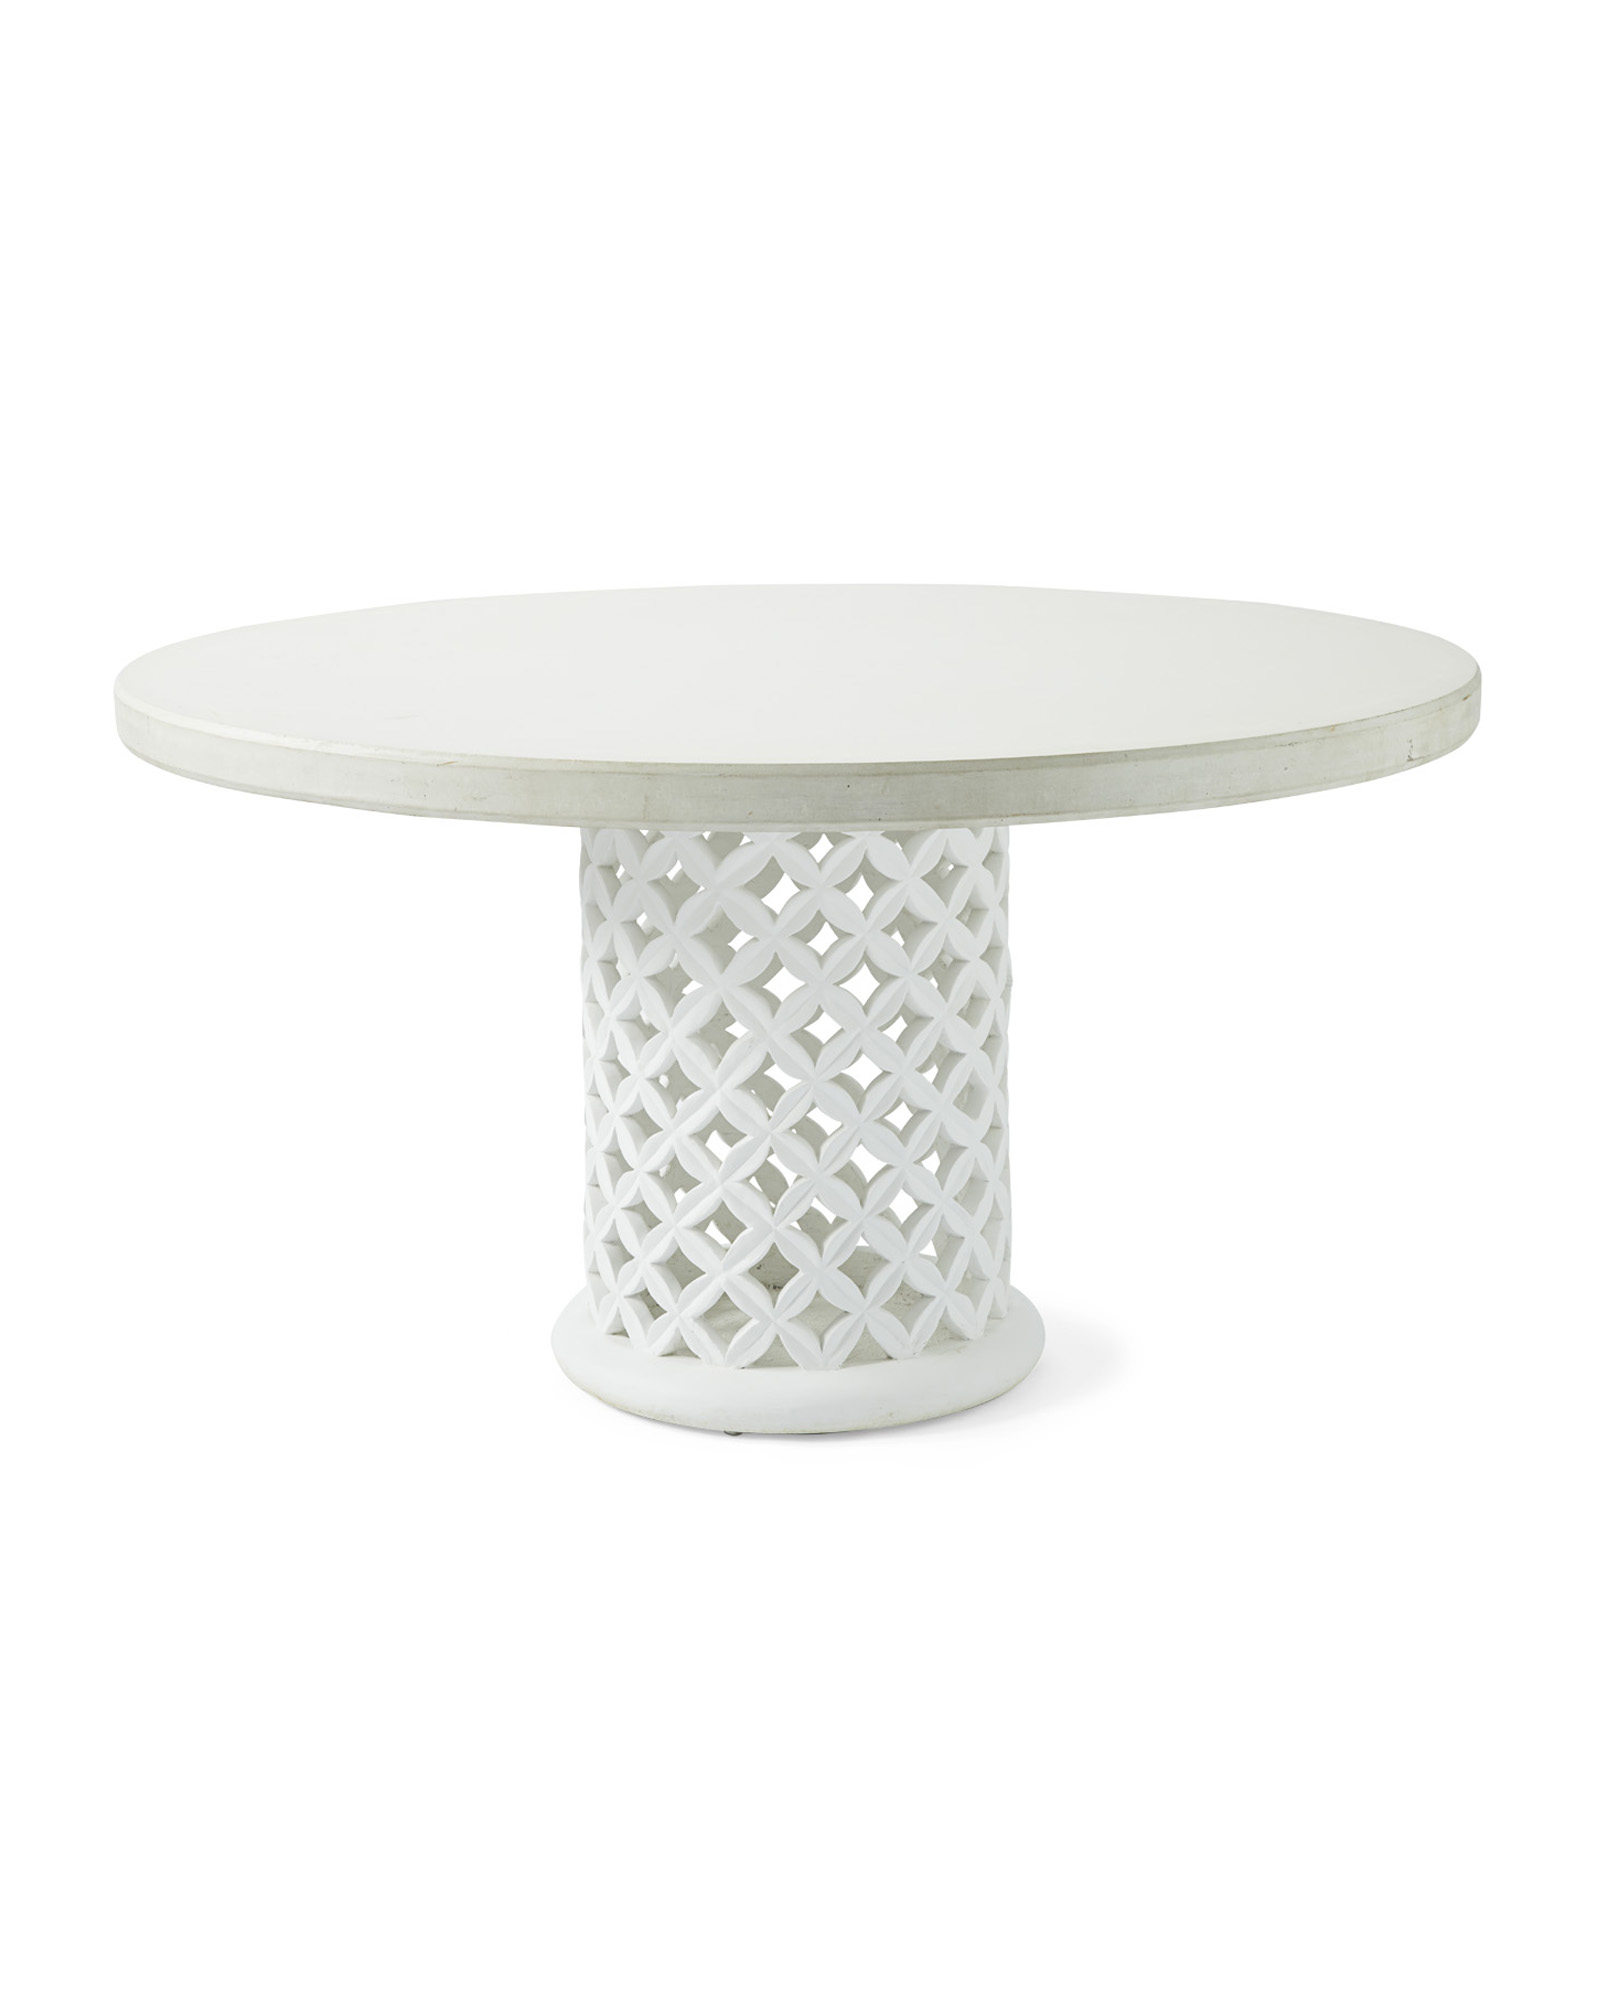 Bamileke Round Dining Table, White/White